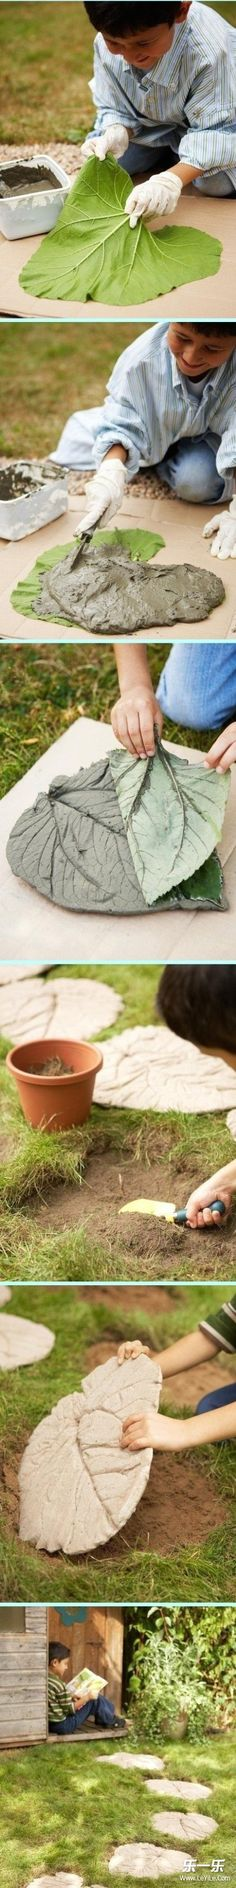 DIY Garden Path of Leaves #DIY #Garden_Path #Leaves